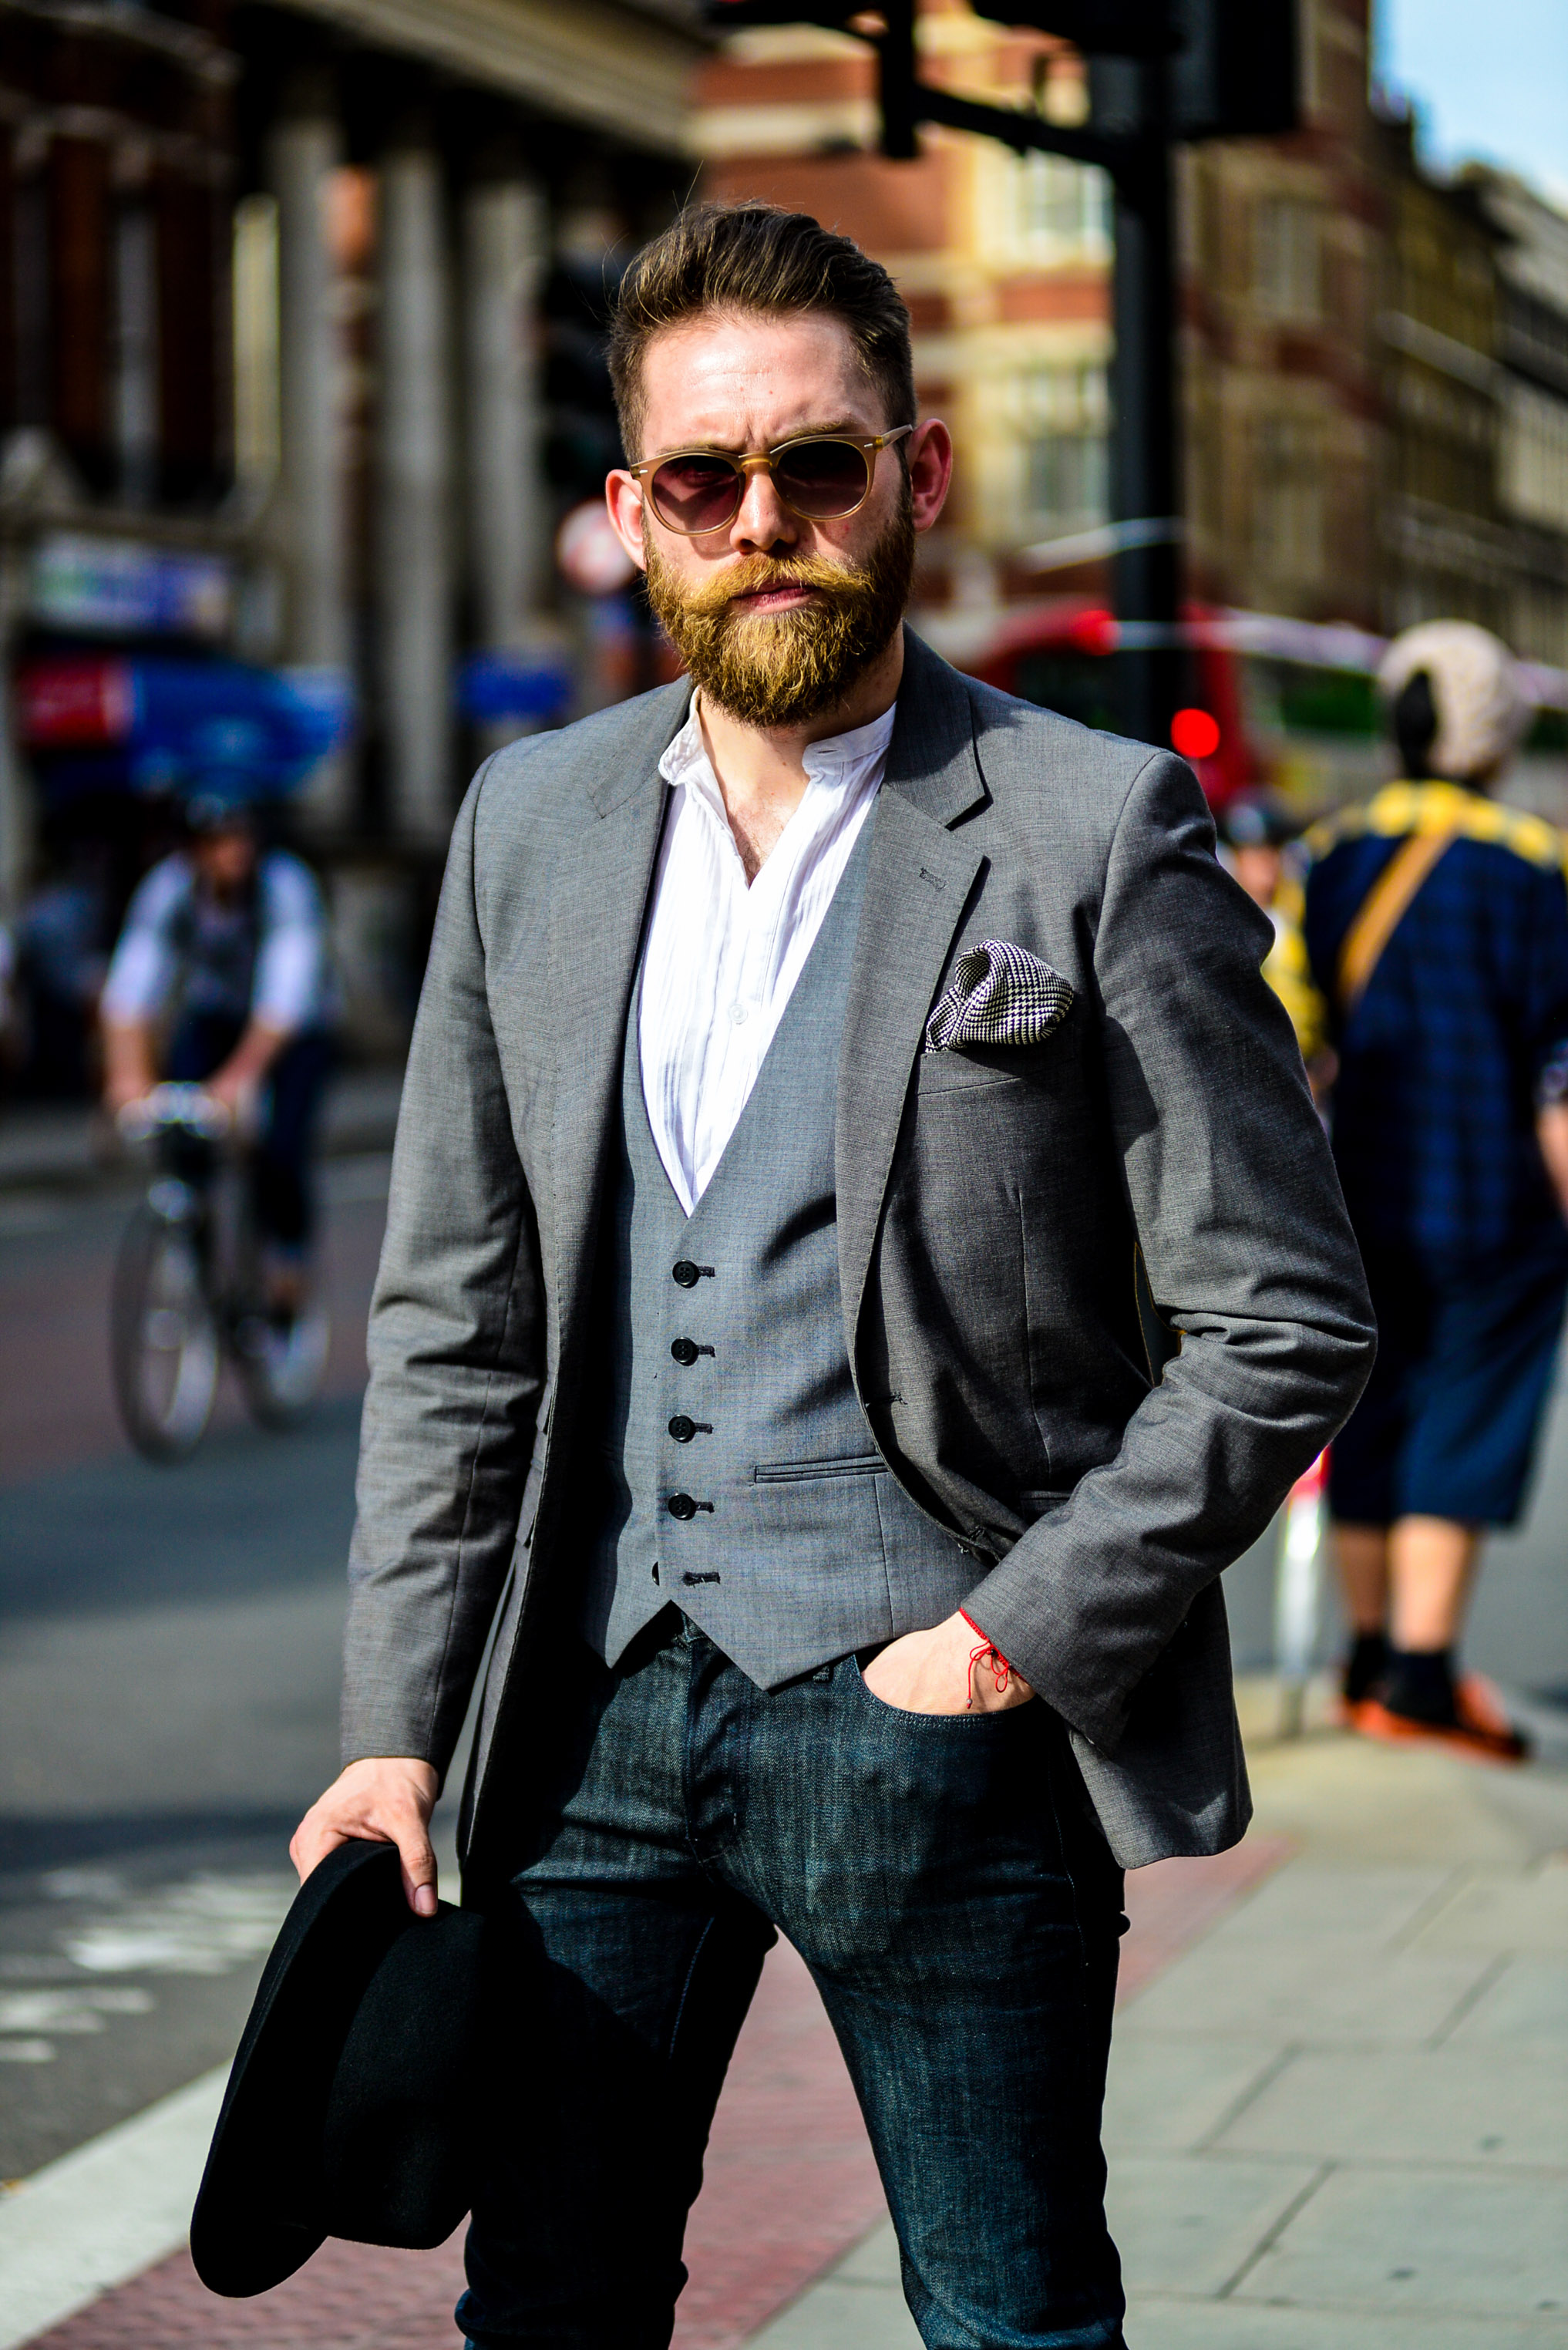 How to be a classy guy